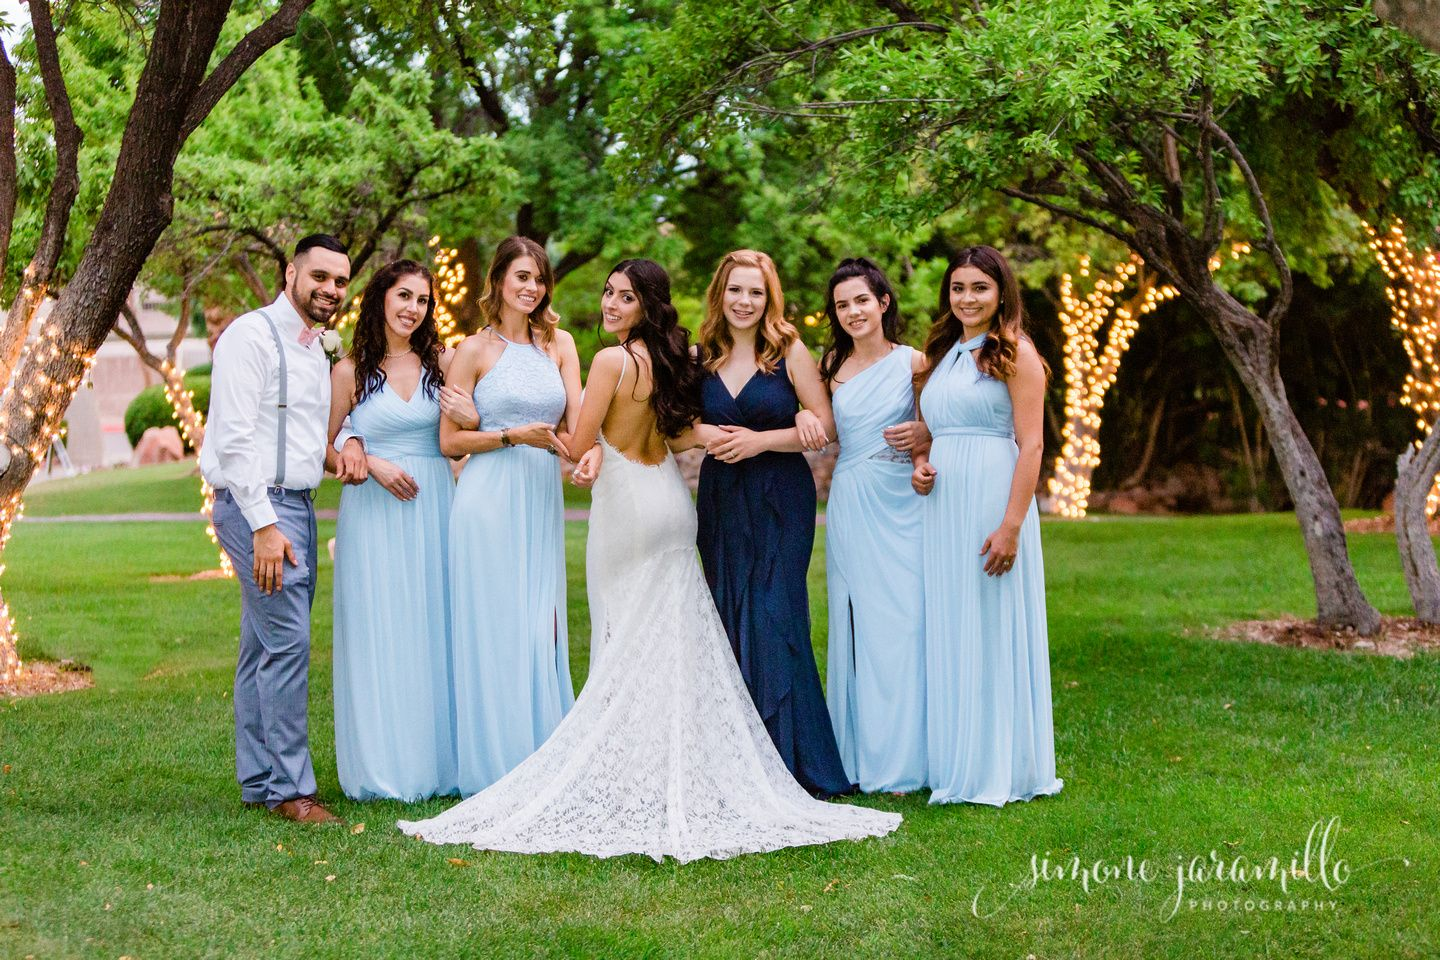 Formal Wedding photos with a twist. Blue and white wedding